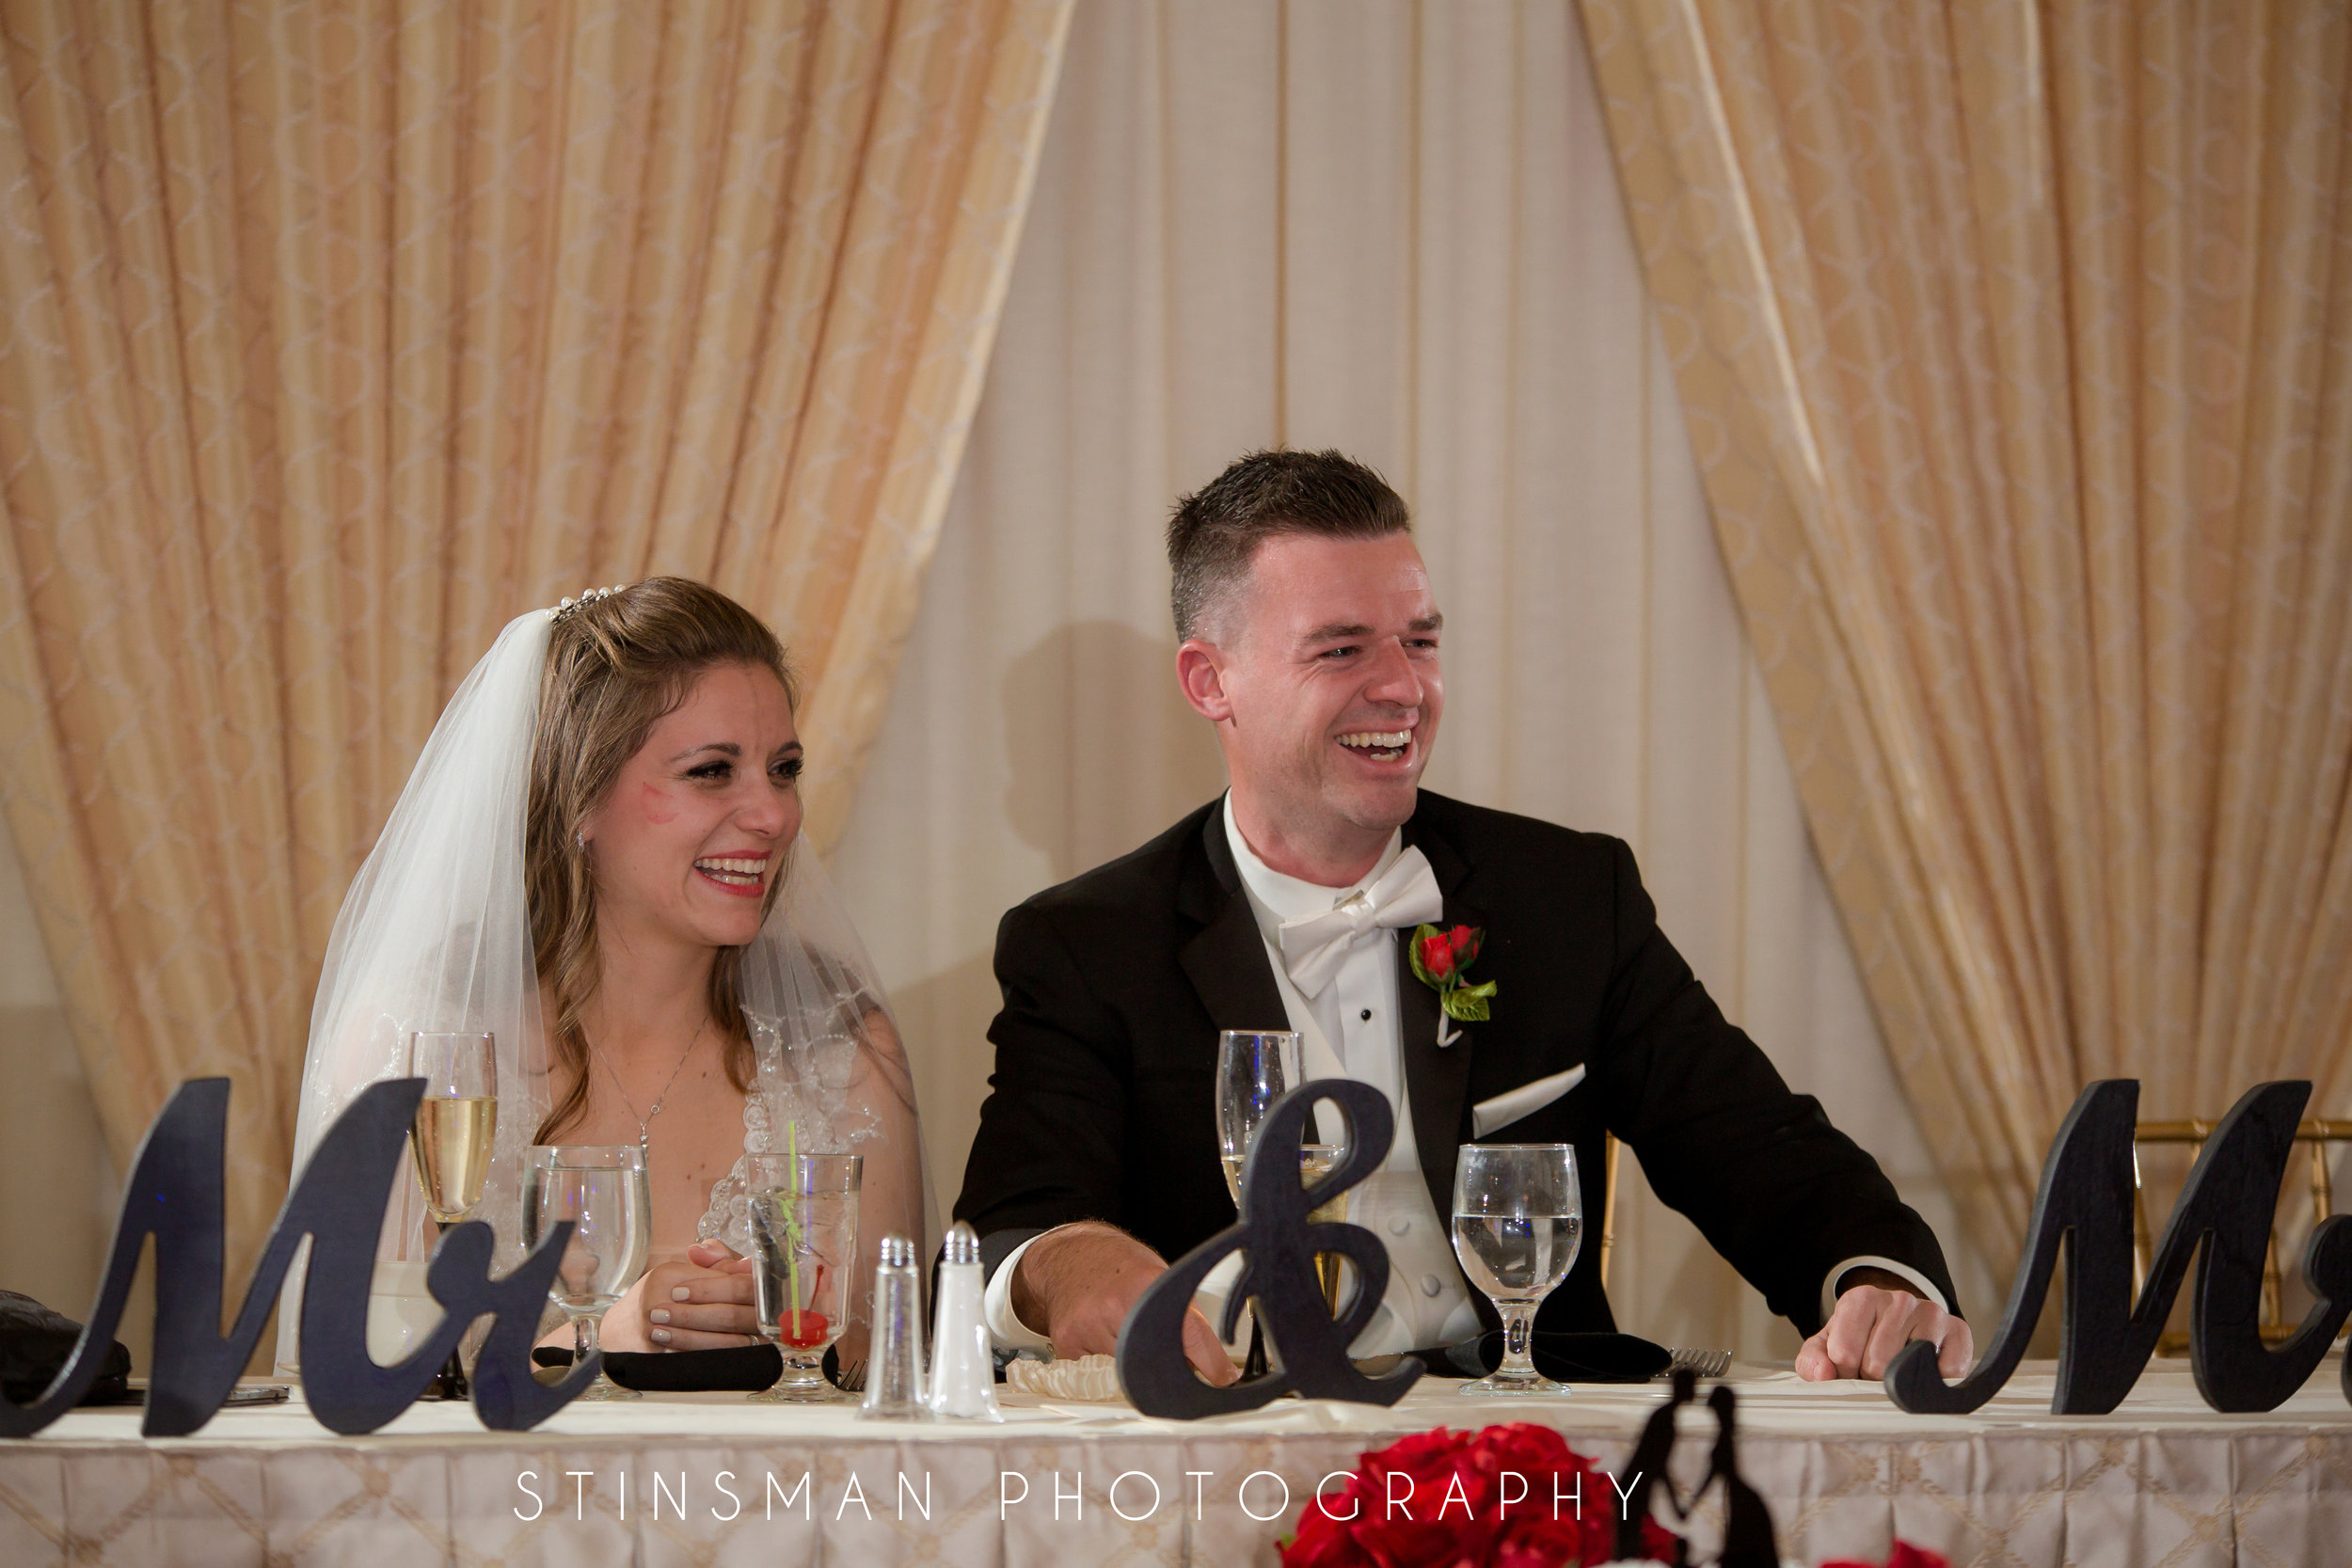 laughing during the speech by the best man